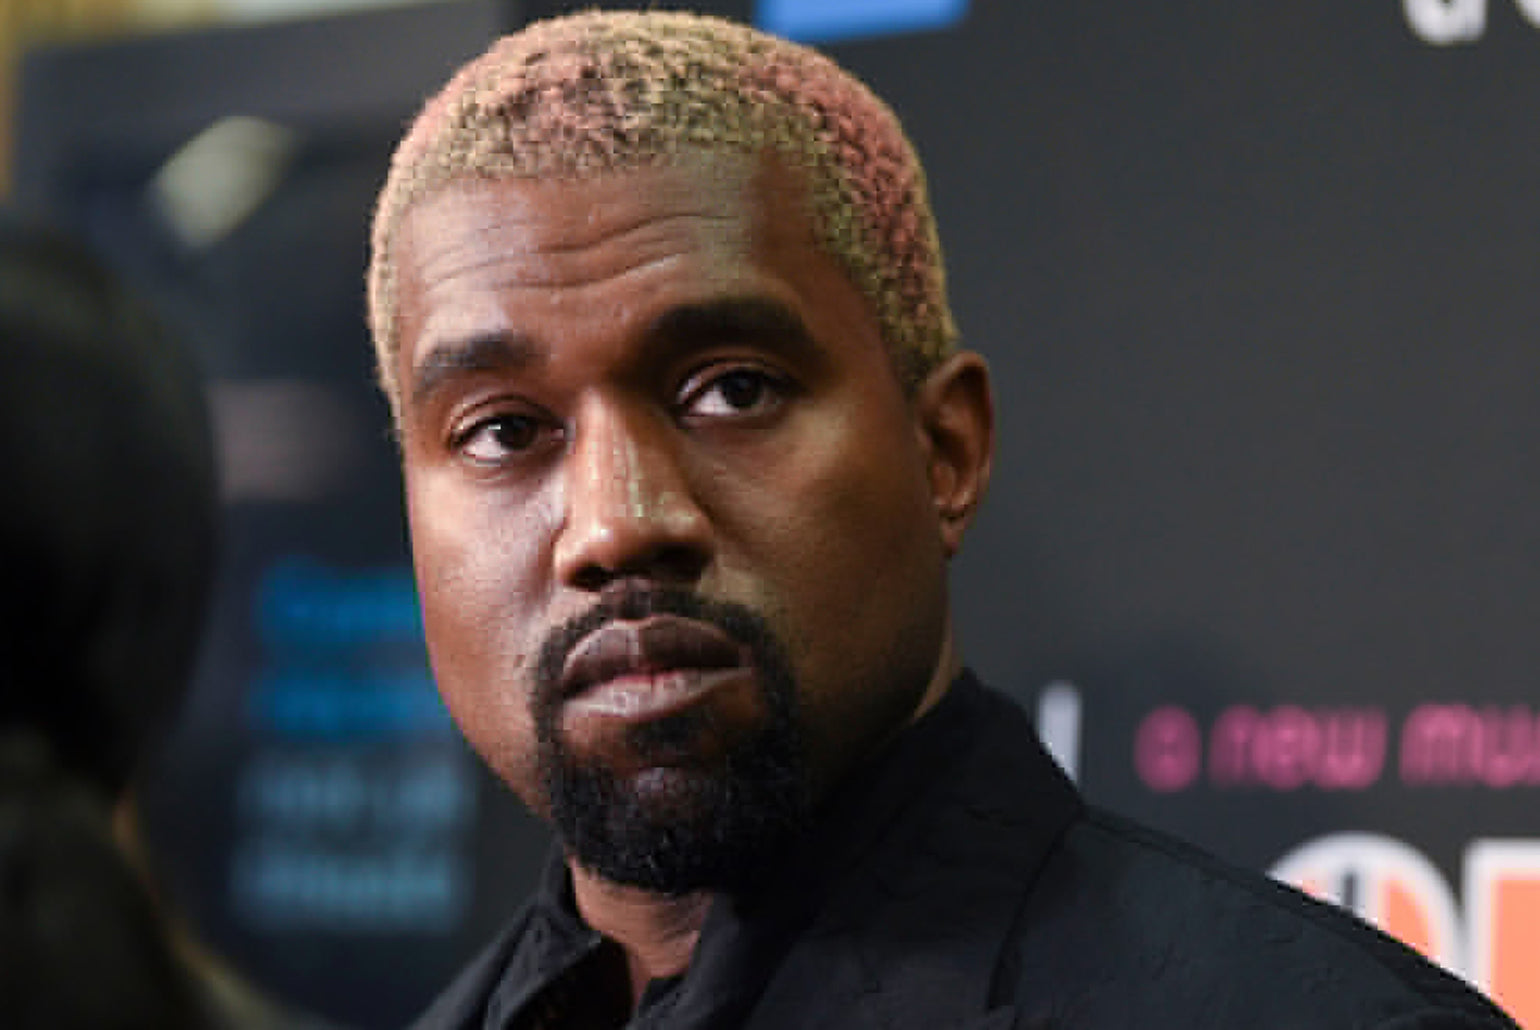 KANYE WEST'S TWITTER STORM SHOWS US WE NEED TO BE MORE UNDERSTANDING ABOUT MENTAL HEALTH